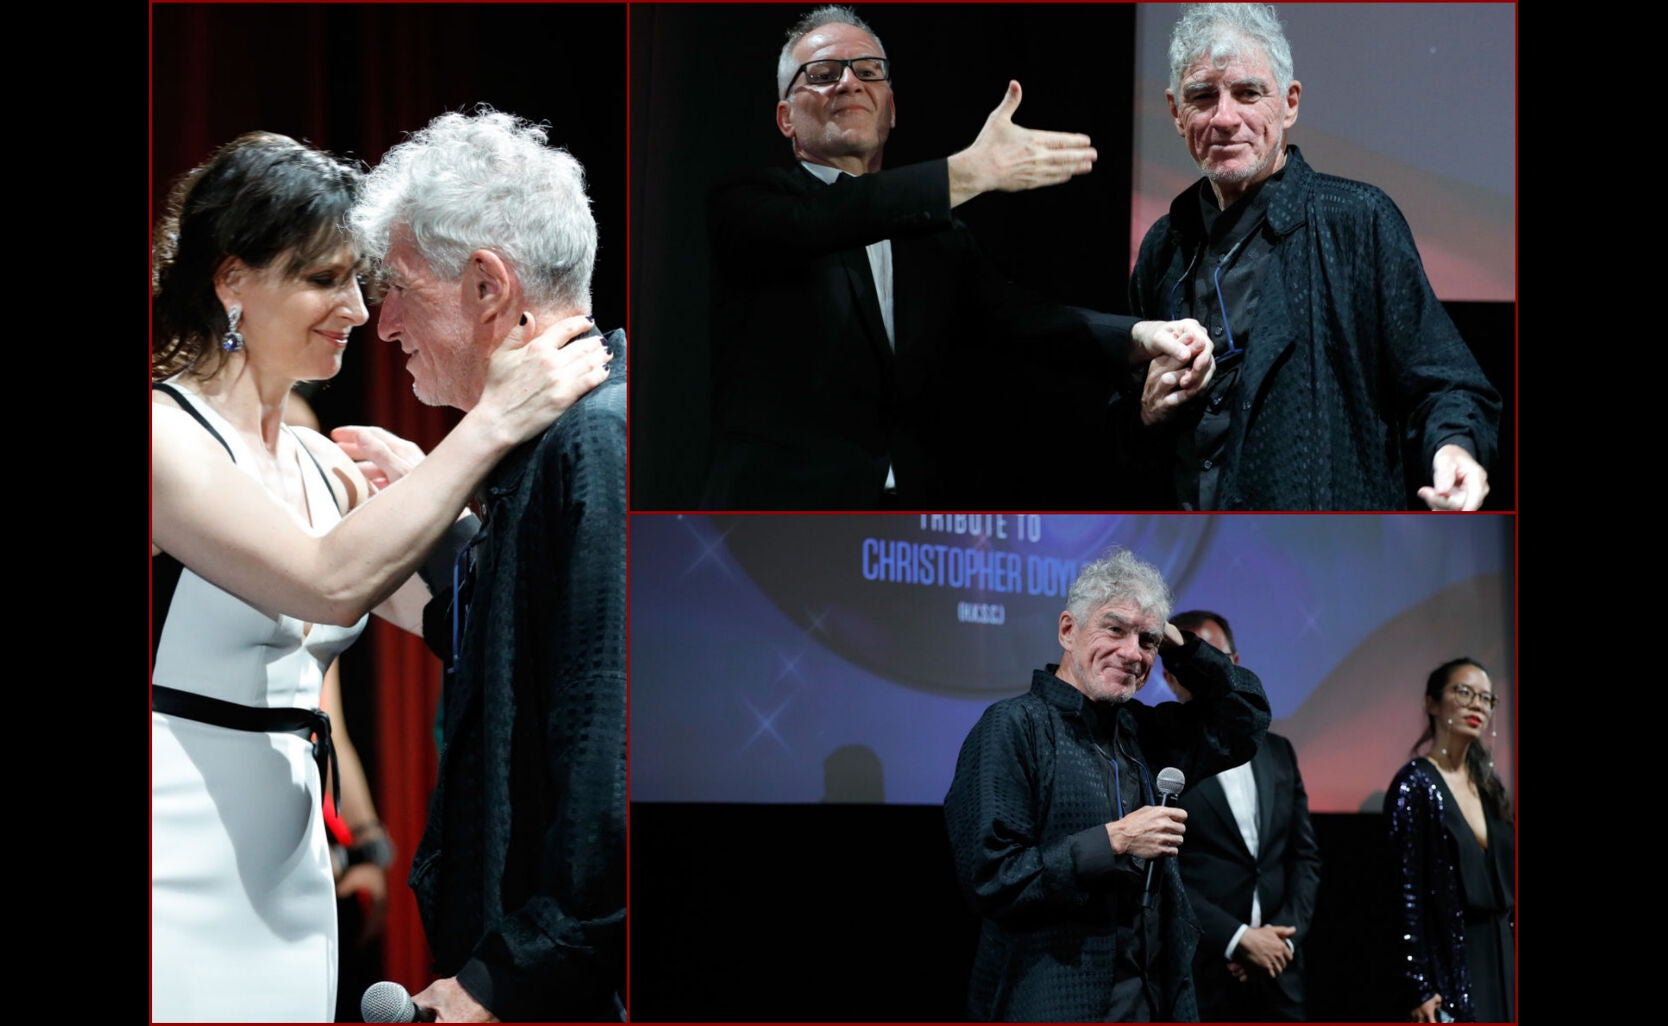 Cinematographer Christopher Doyle receives award in Cannes 2017